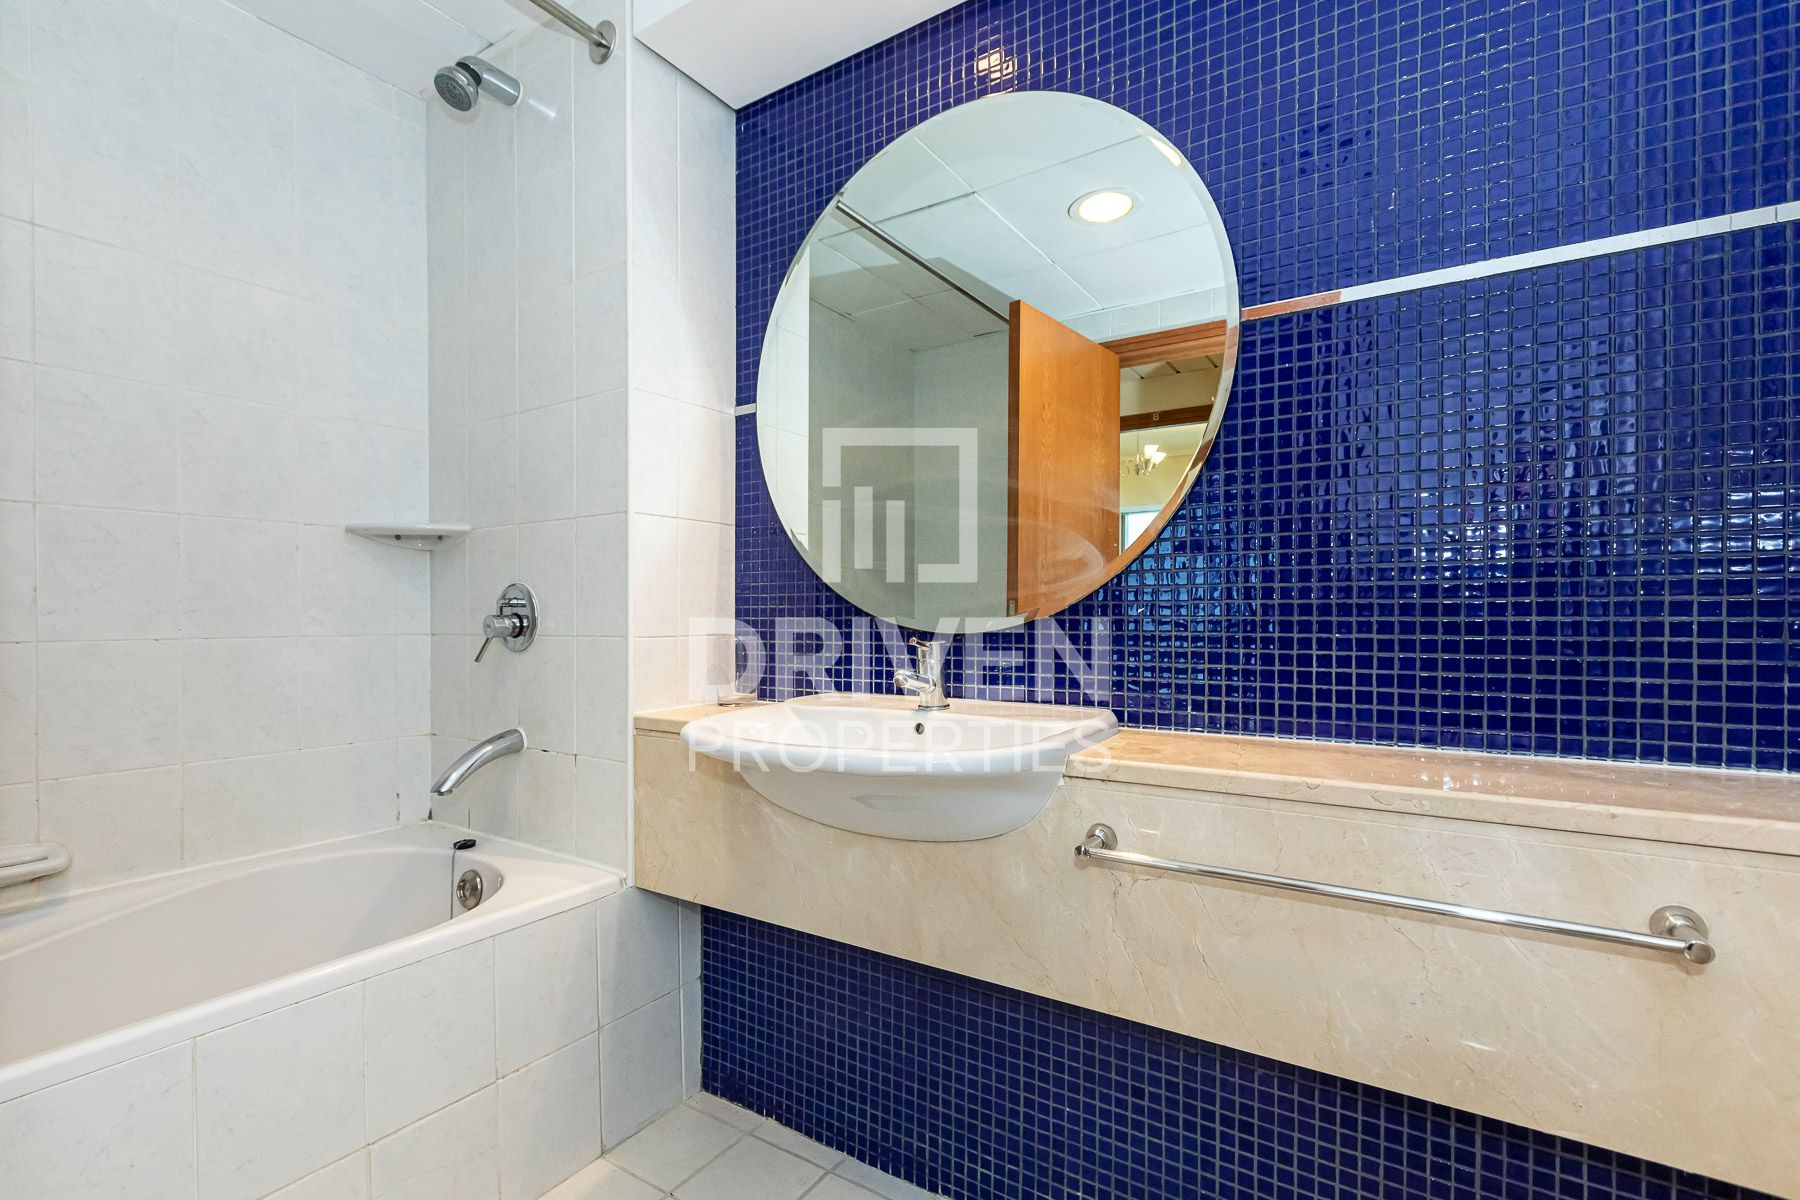 Apartment for Rent in 21st Century Tower - Sheikh Zayed Road